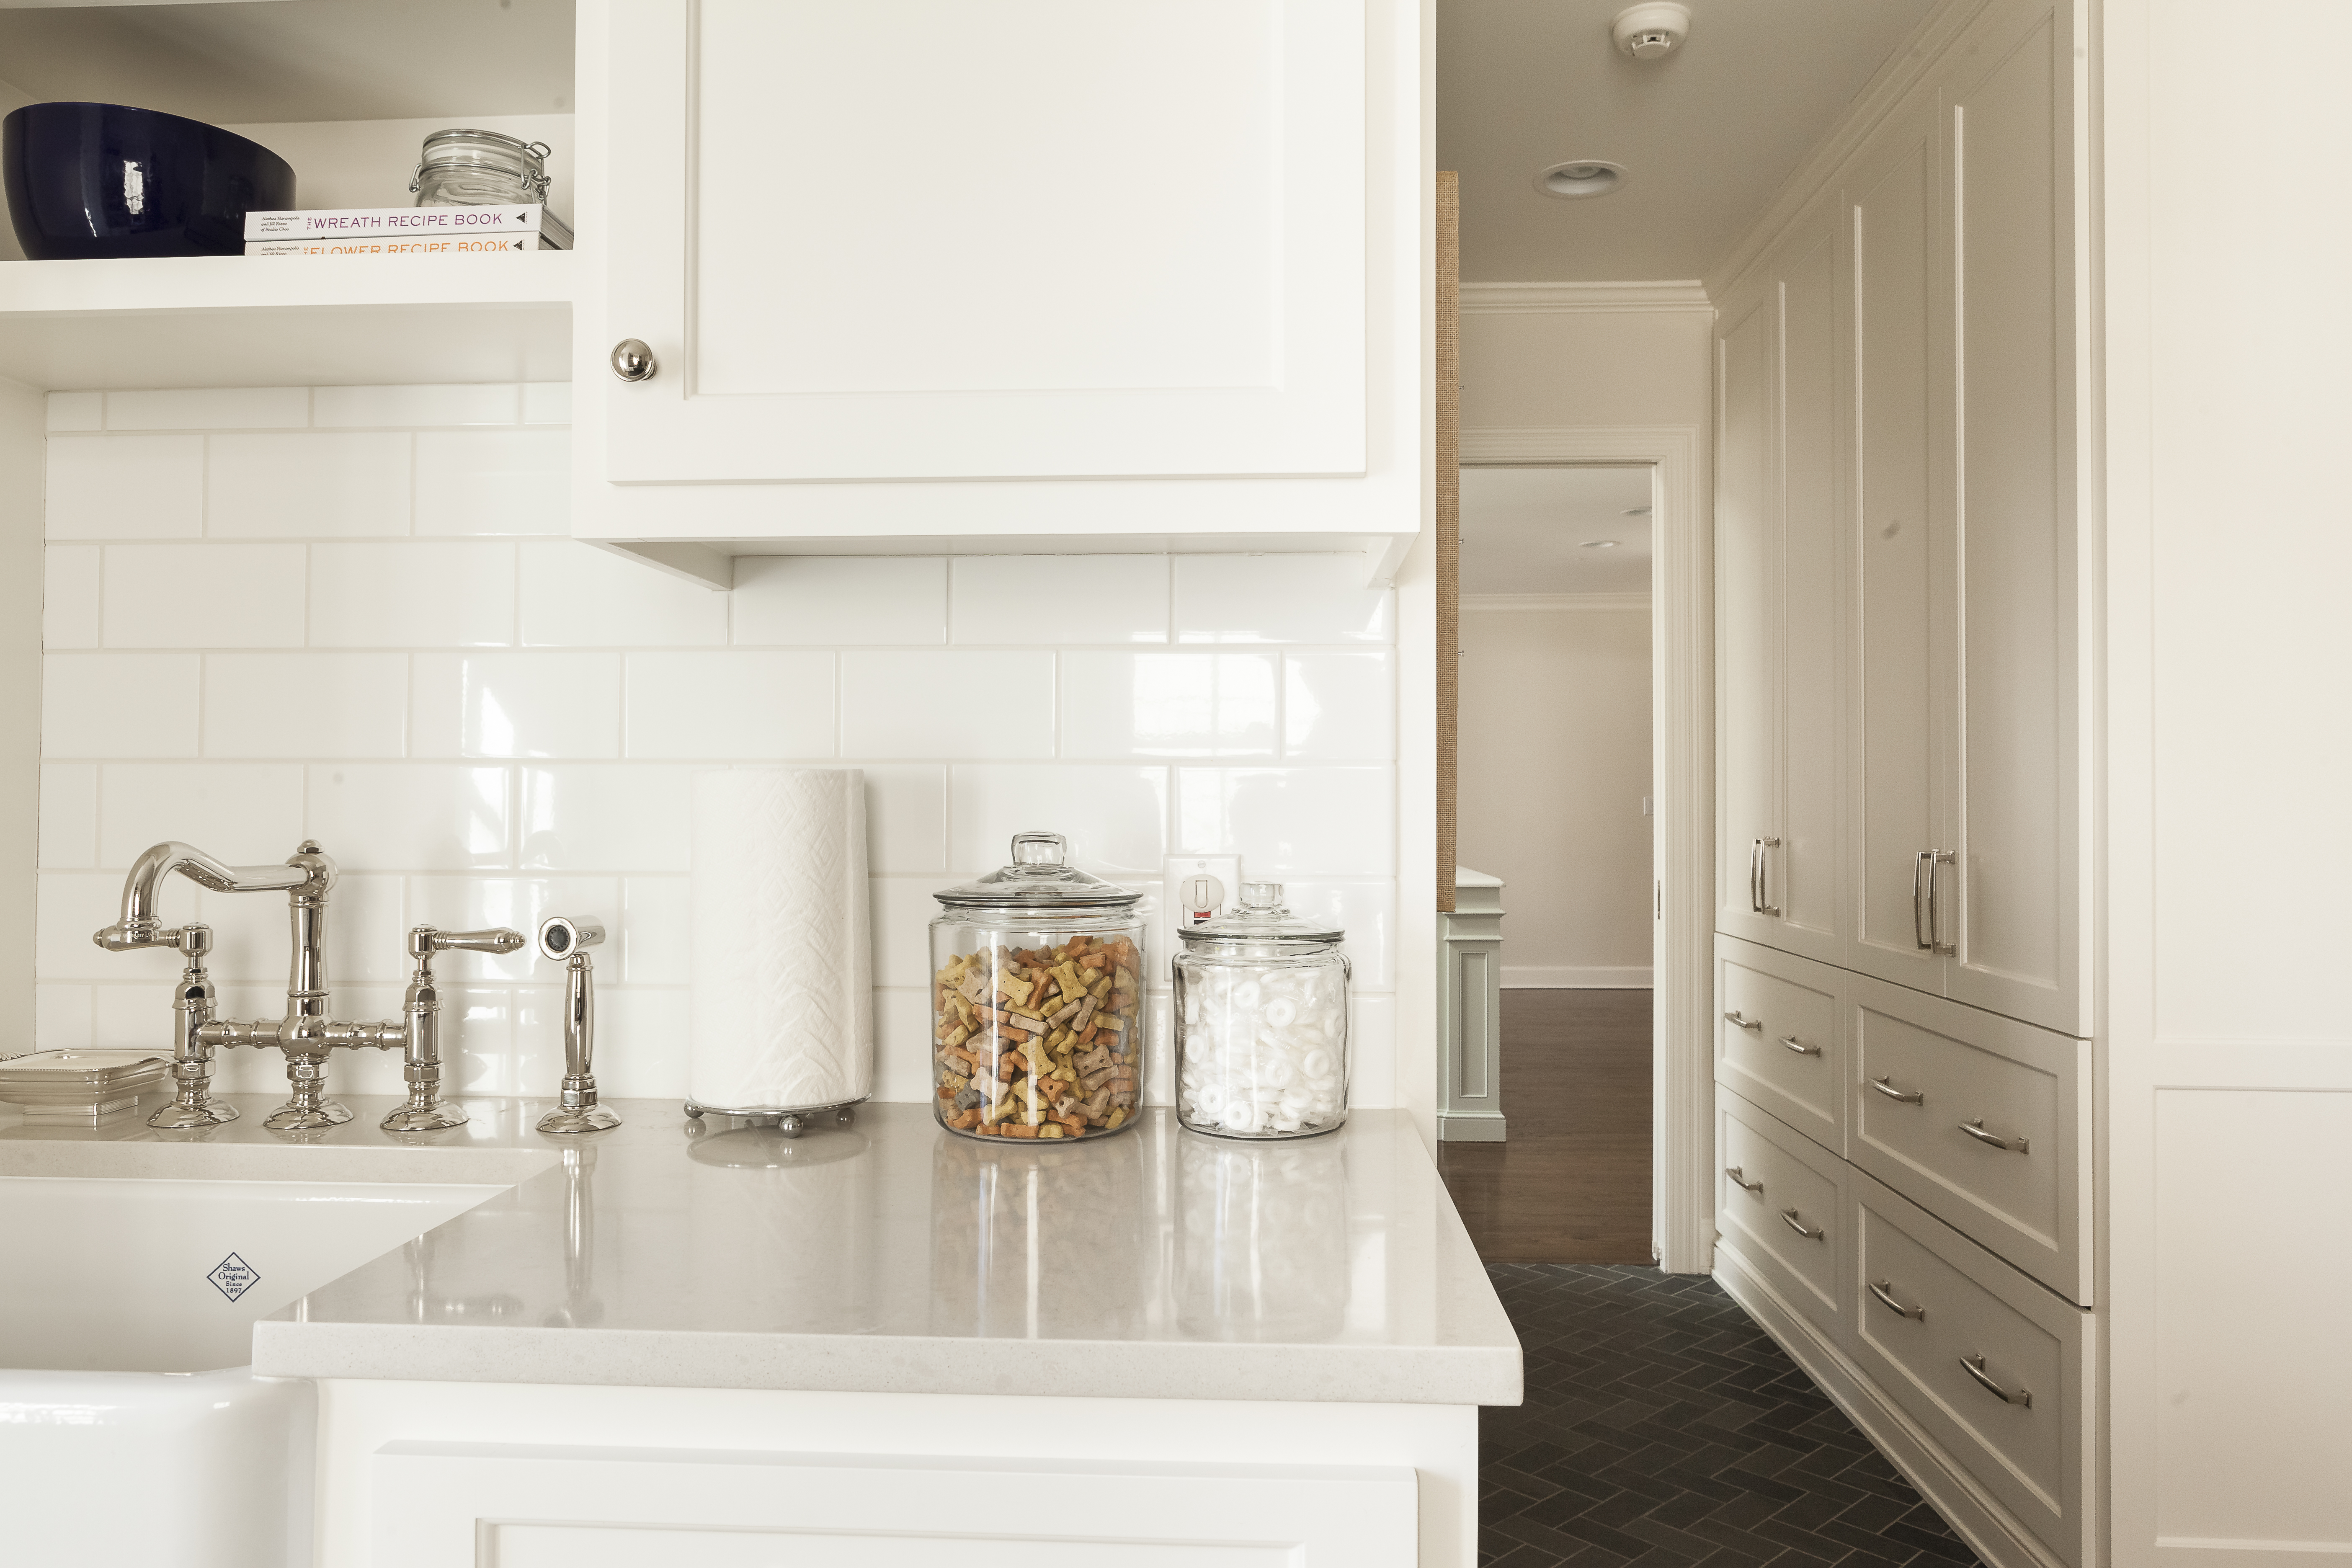 laundry room with view to kitchen after scovell wolfe remodel